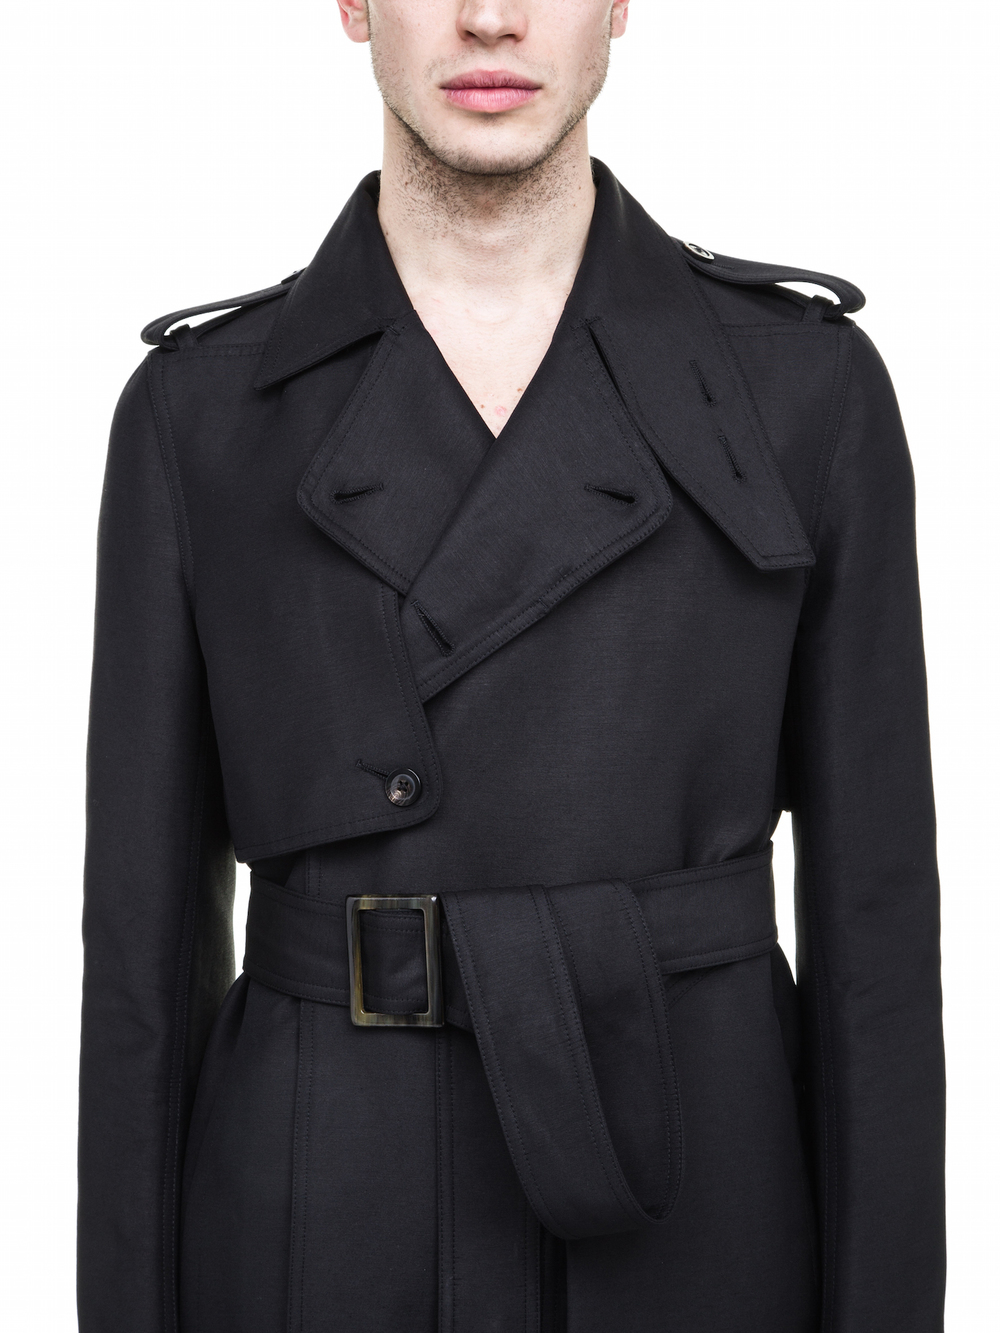 RICK OWENS FALL WINTER TRENCH IN BLACK